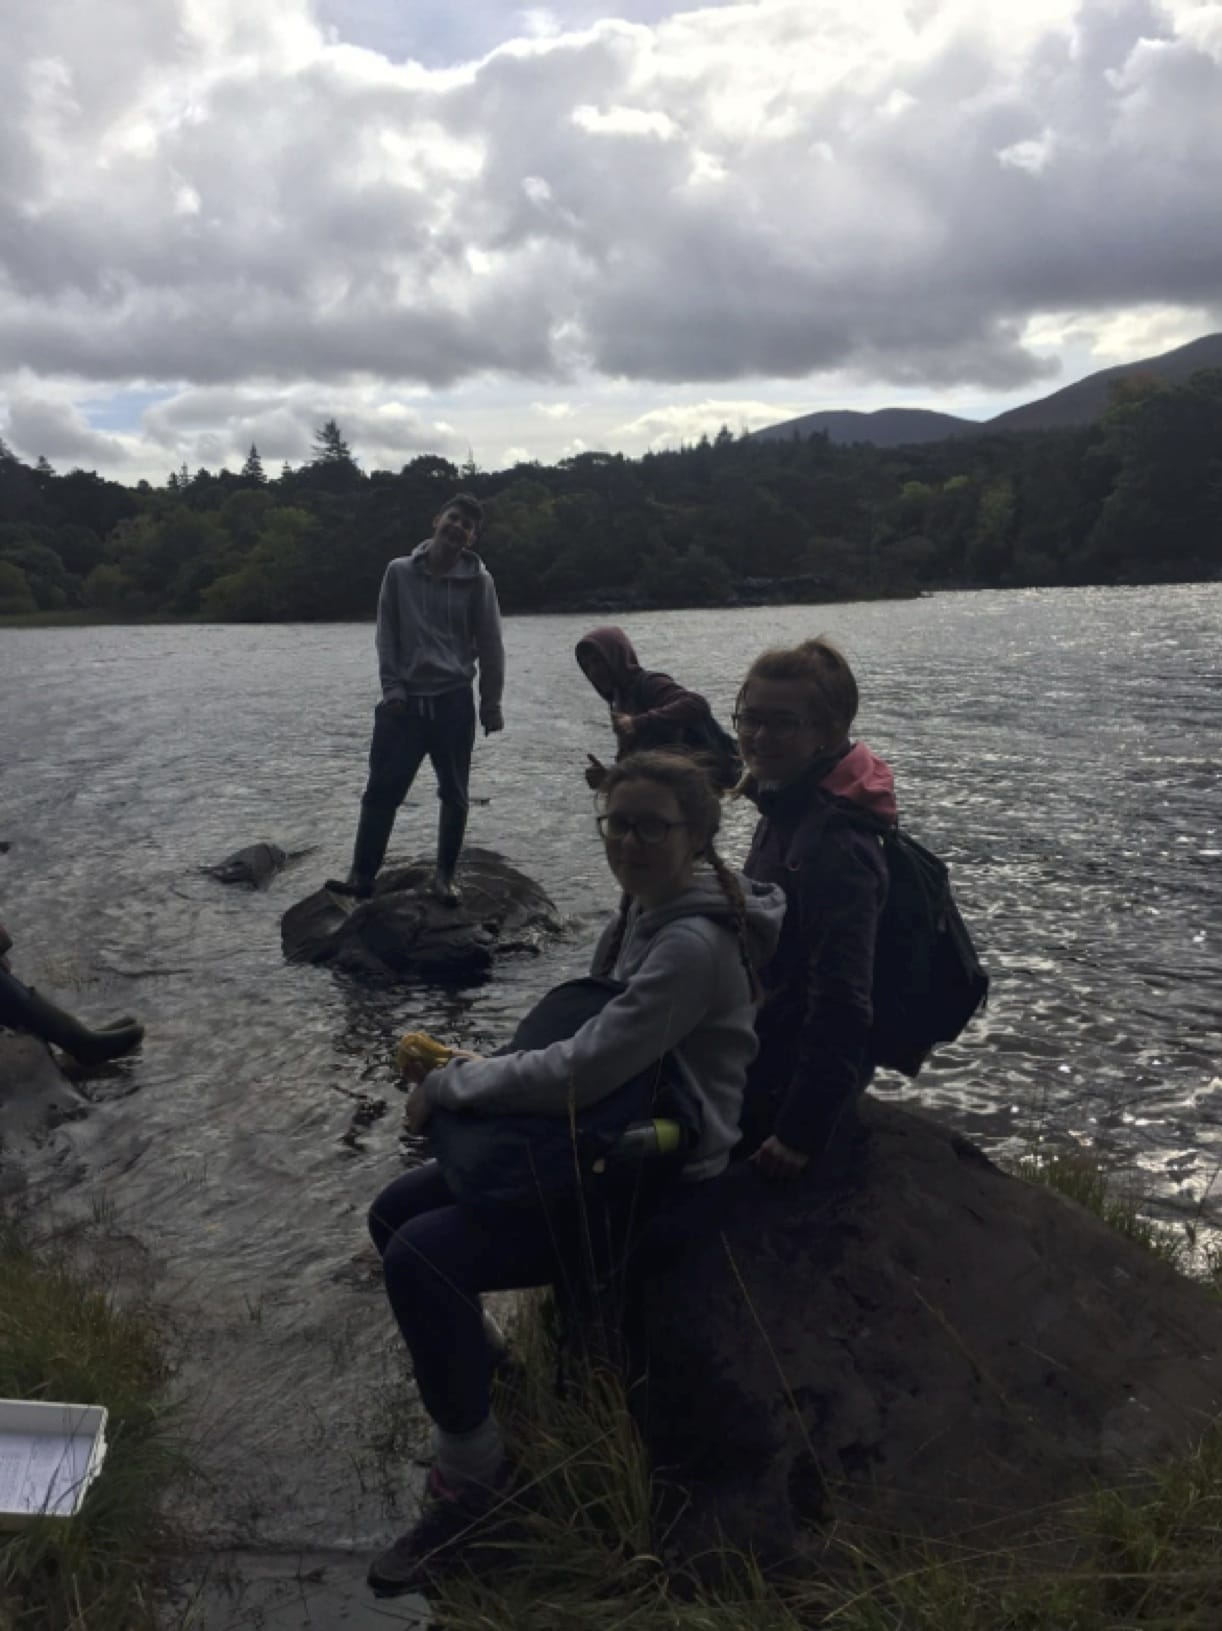 Sept 22, 2016: A well deserved break for some of Desmond College's Leaving Cert students on their Ecology Trip to Killarney National Park.